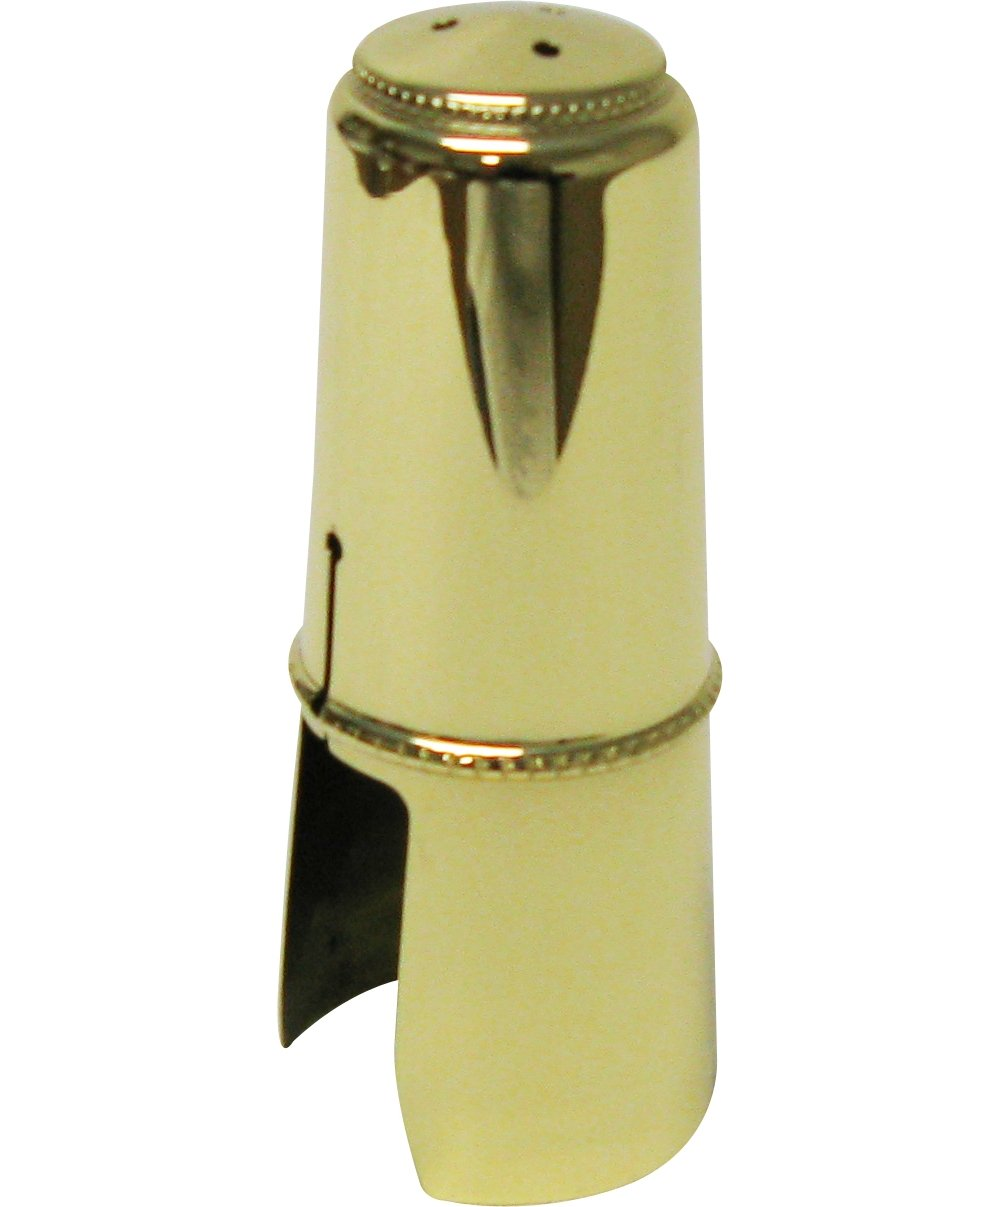 Bonade Tenor Saxophone Ligatures and Caps Lacquer - Inverted - Cap Only